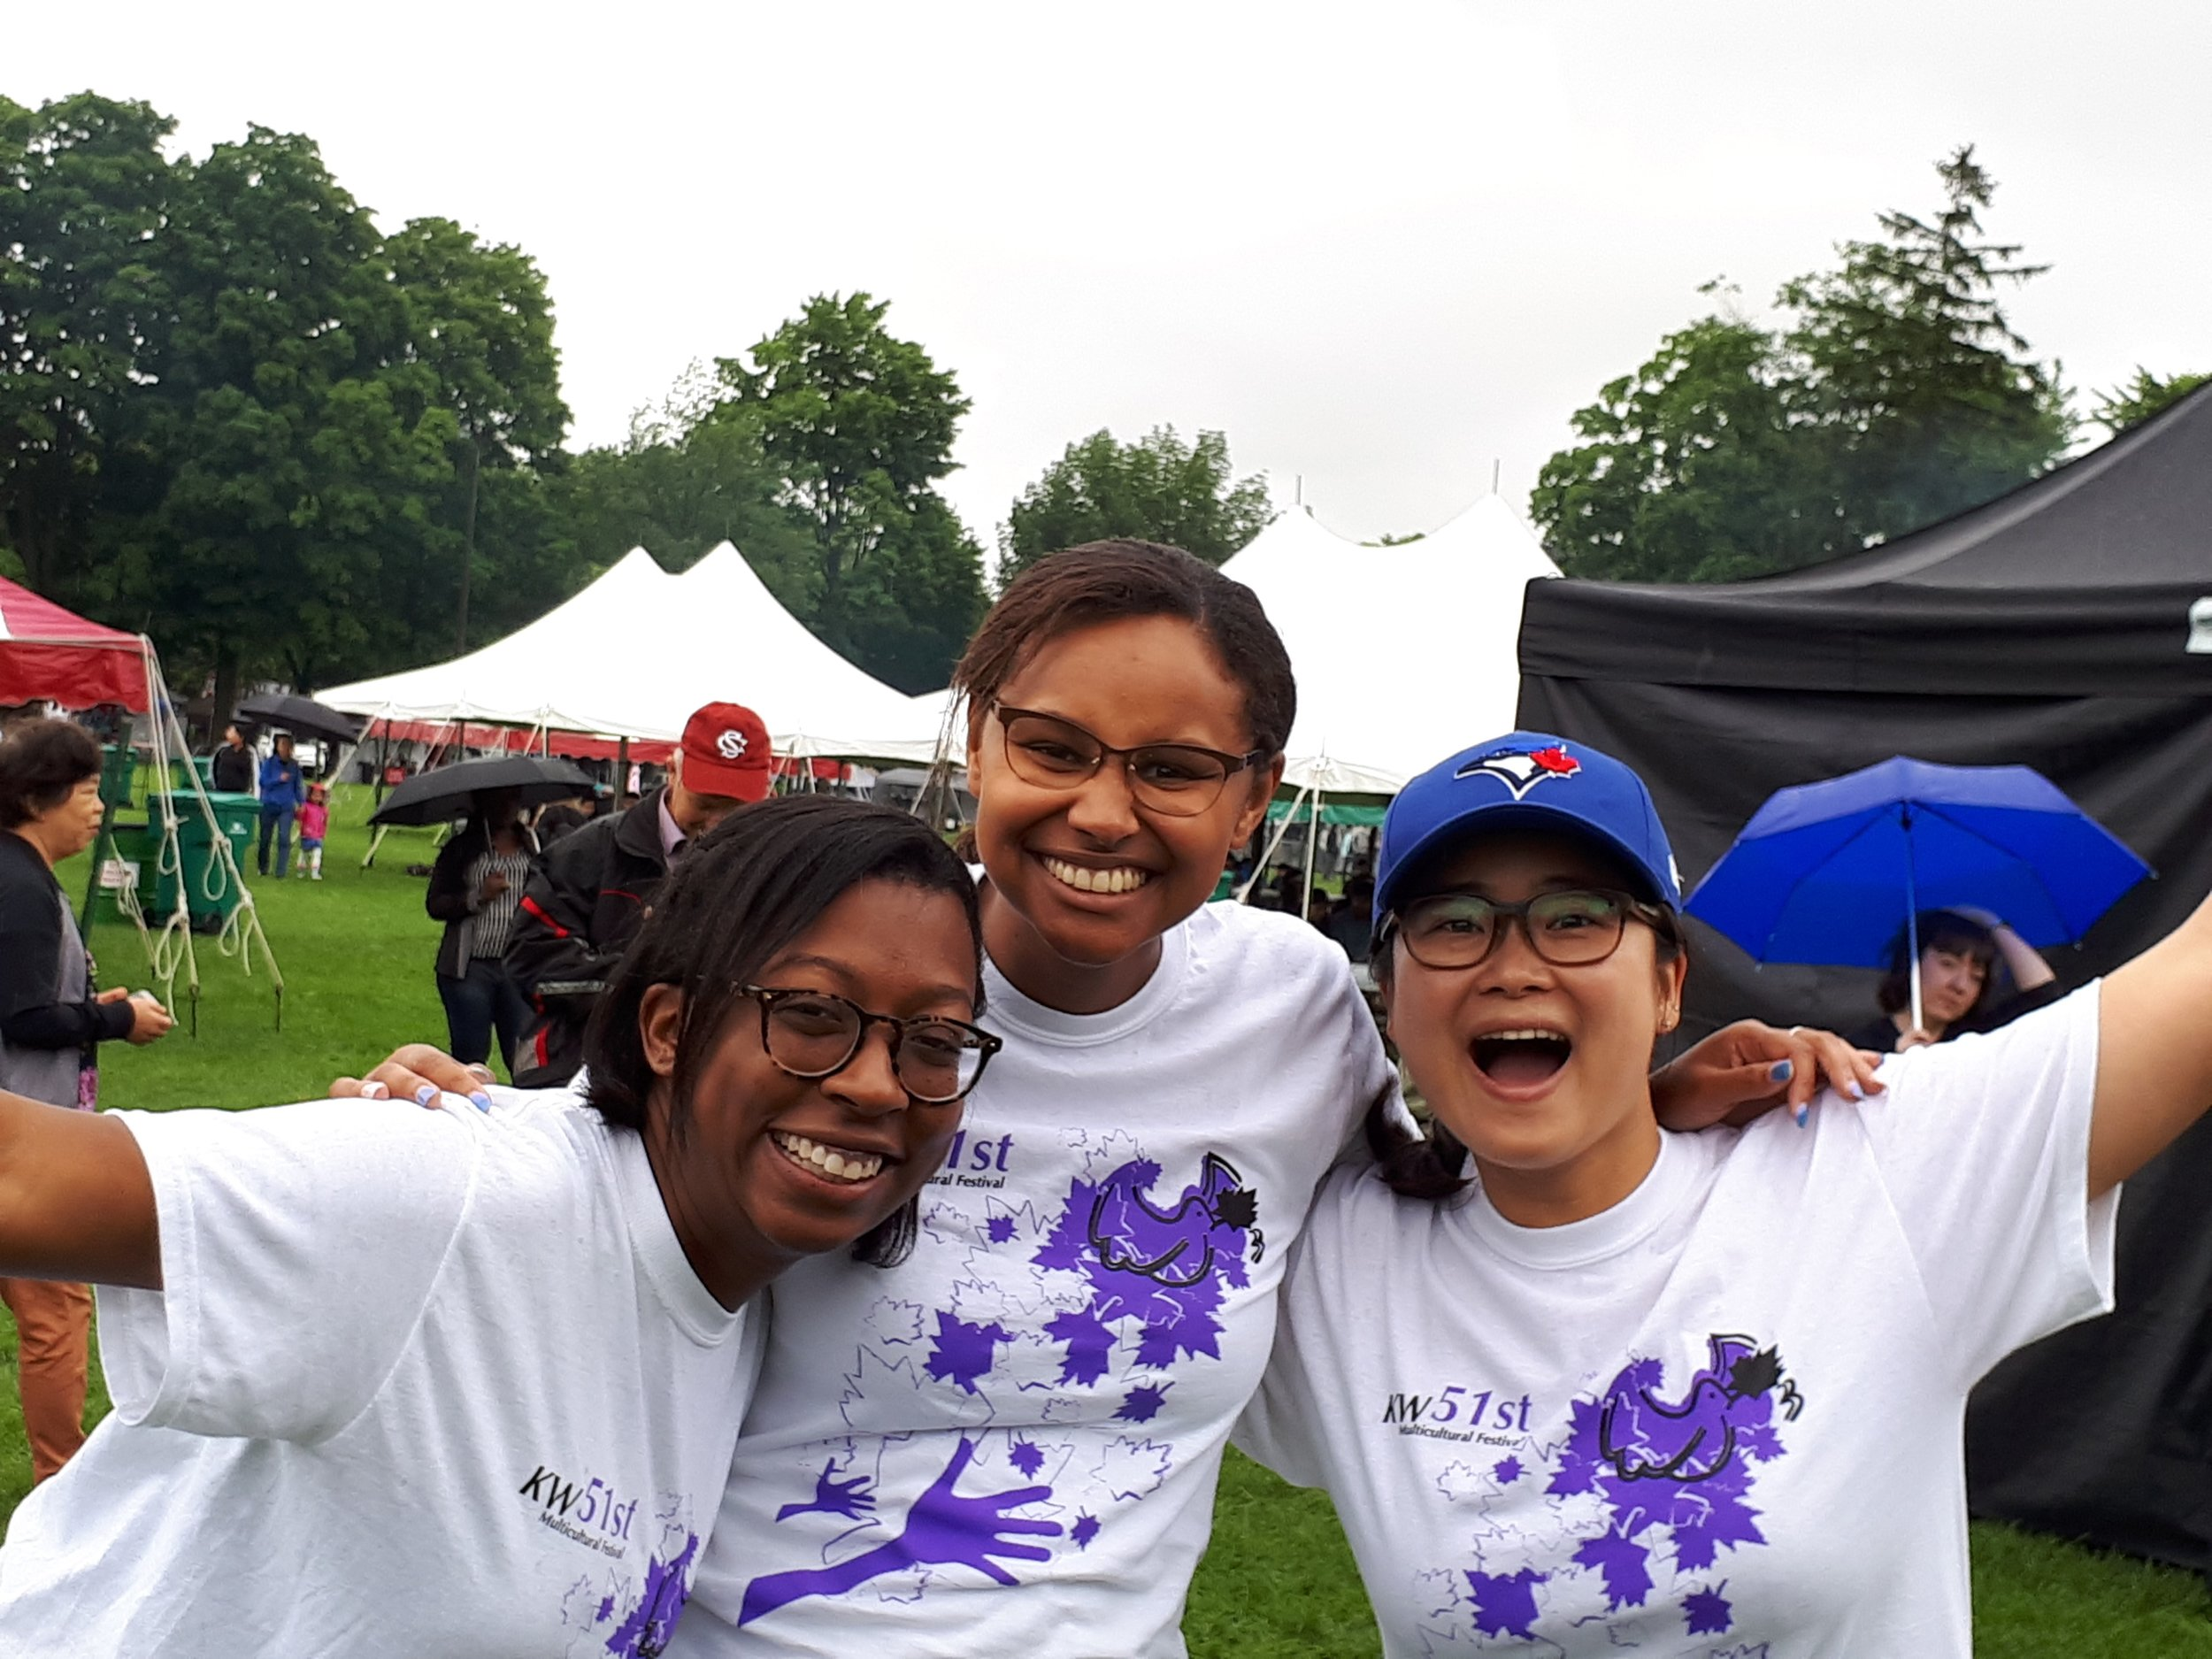 K-W Multicultural Festival - Festival Volunteers help with a variety of jobs throughout the Festival.All volunteers receive a T-shirt as well as a $10 food voucher redeemable at any one of our Food Vendors for each four-hour shift worked!